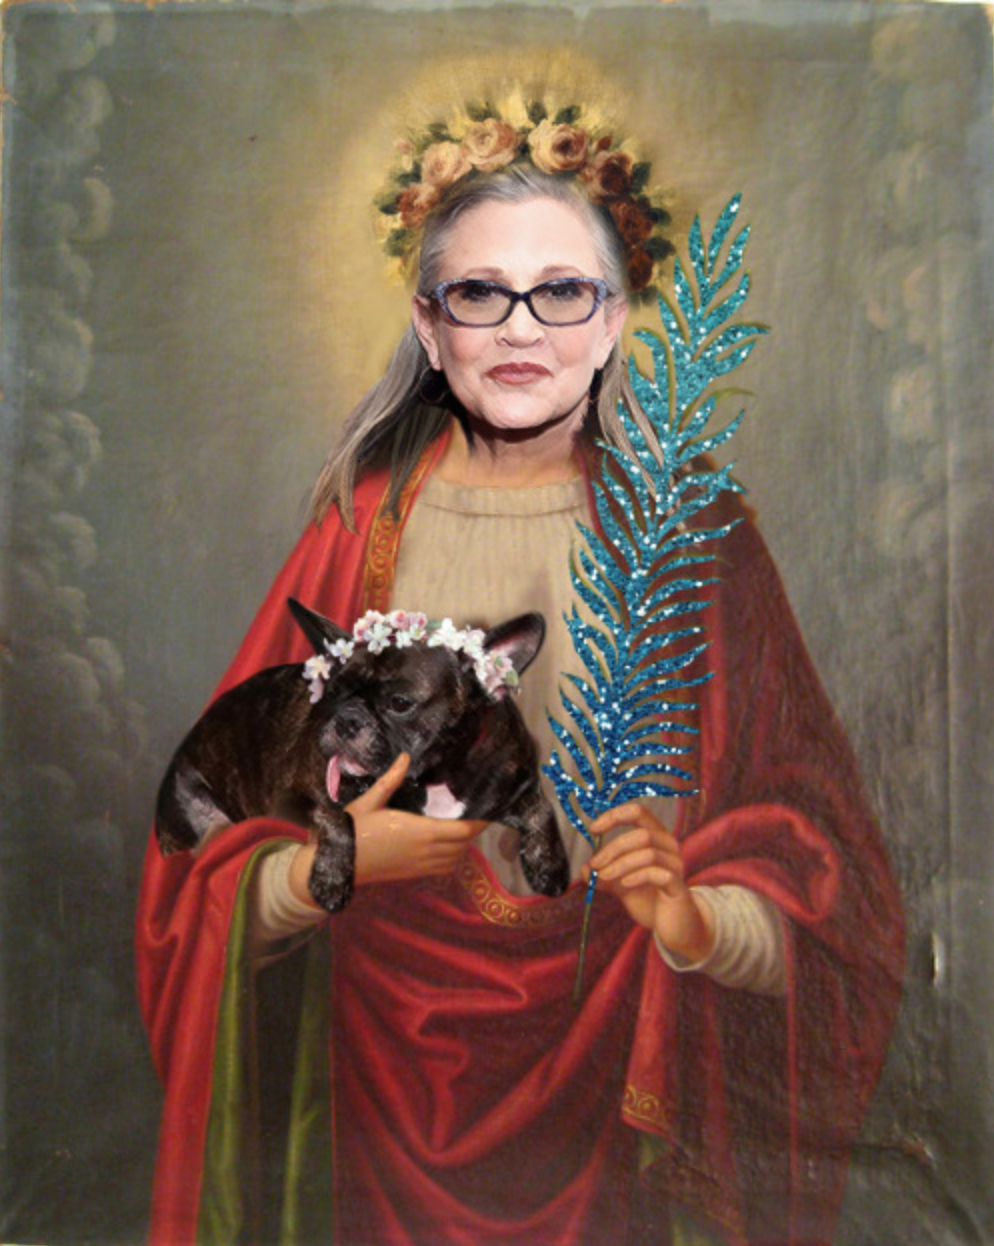 Saint Carrie of Hollywood , by artist Rave Sashayed.Source - Sashayed on Tumblr  Image Description:Enhanced photo of Carrie Fisher photoshopped to look like classic (Christian) iconography of a saint. Fisher wears a red shawl with gold embroidery and green underside that at times shows in the draping, a yellow rose crown with gold halo behind her head. In one hand poised in typical iconographic form she holds a glittery turquoise frond, and her French bulldog, Gary, lays across her other arm, held by her hand. Gary has a small crown of white and pink flowers on his head, and his characteristic tongue-hanging-out face. The background is clouds in an understated color scheme.